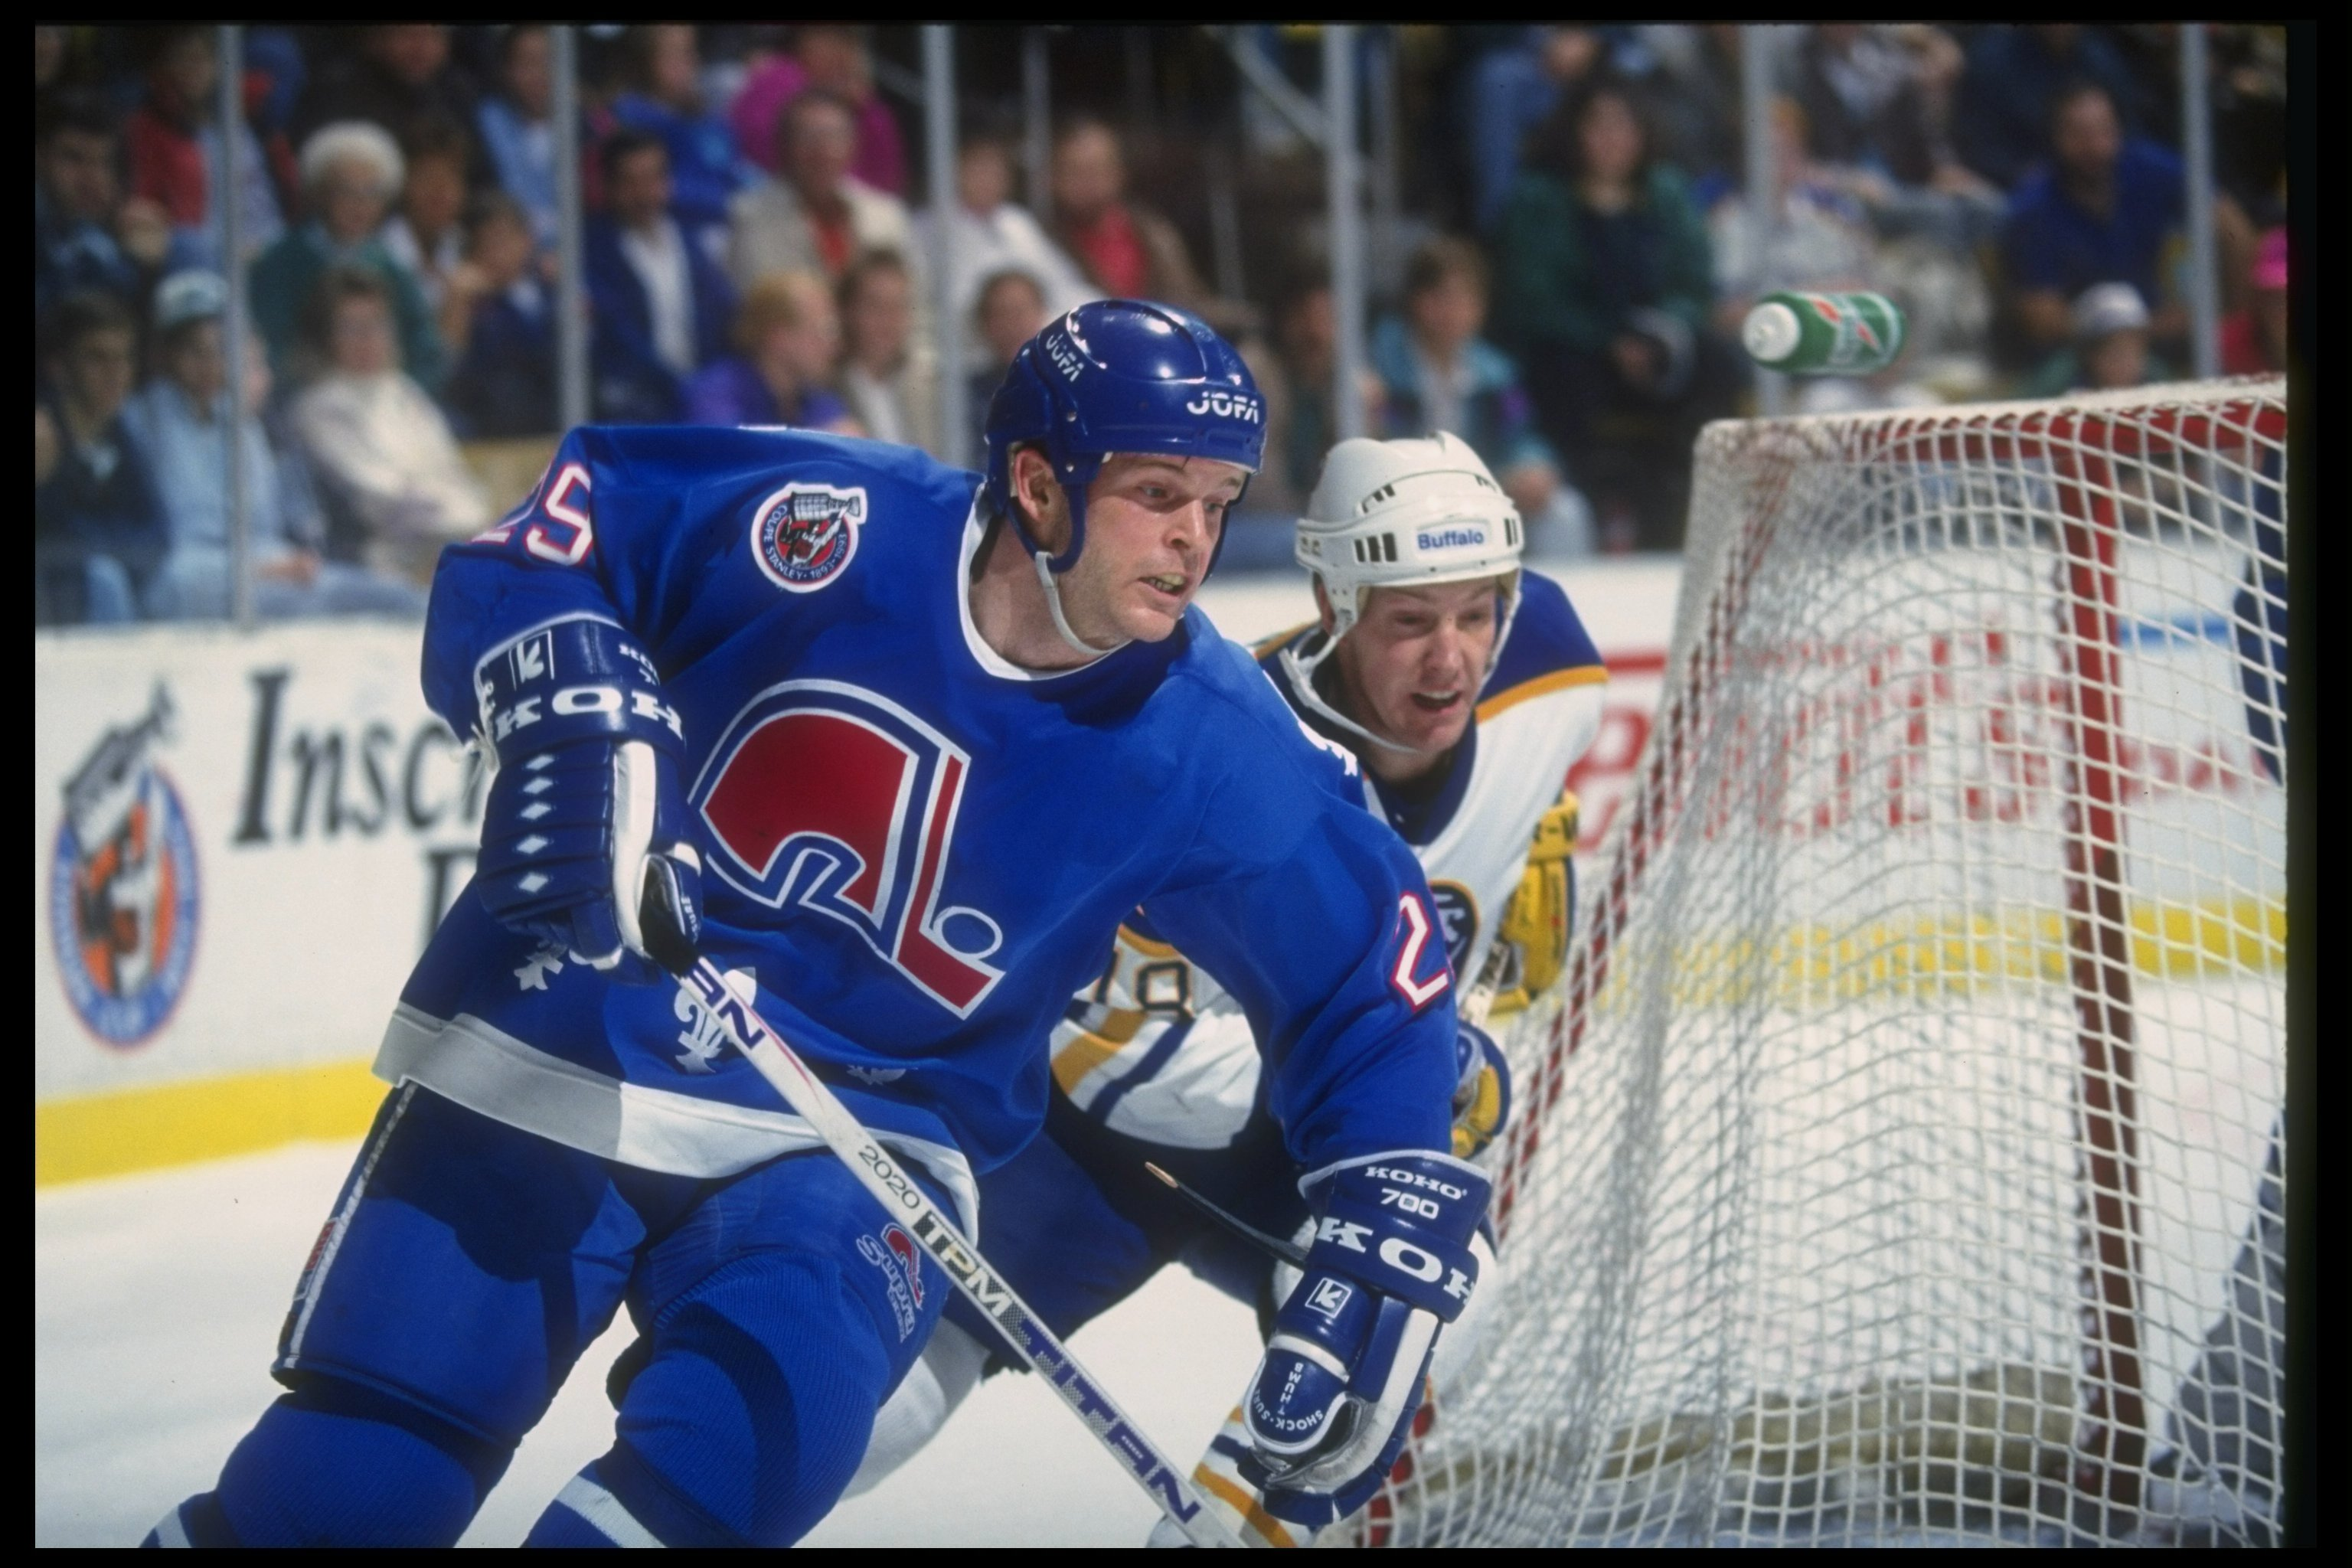 Defenseman Steven Finn of the Quebec Nordiques moves down the ice during a game against the Buffalo Sabres at Memorial Auditorium in 1992. (Rick Stewart /Allsport Getty Images)